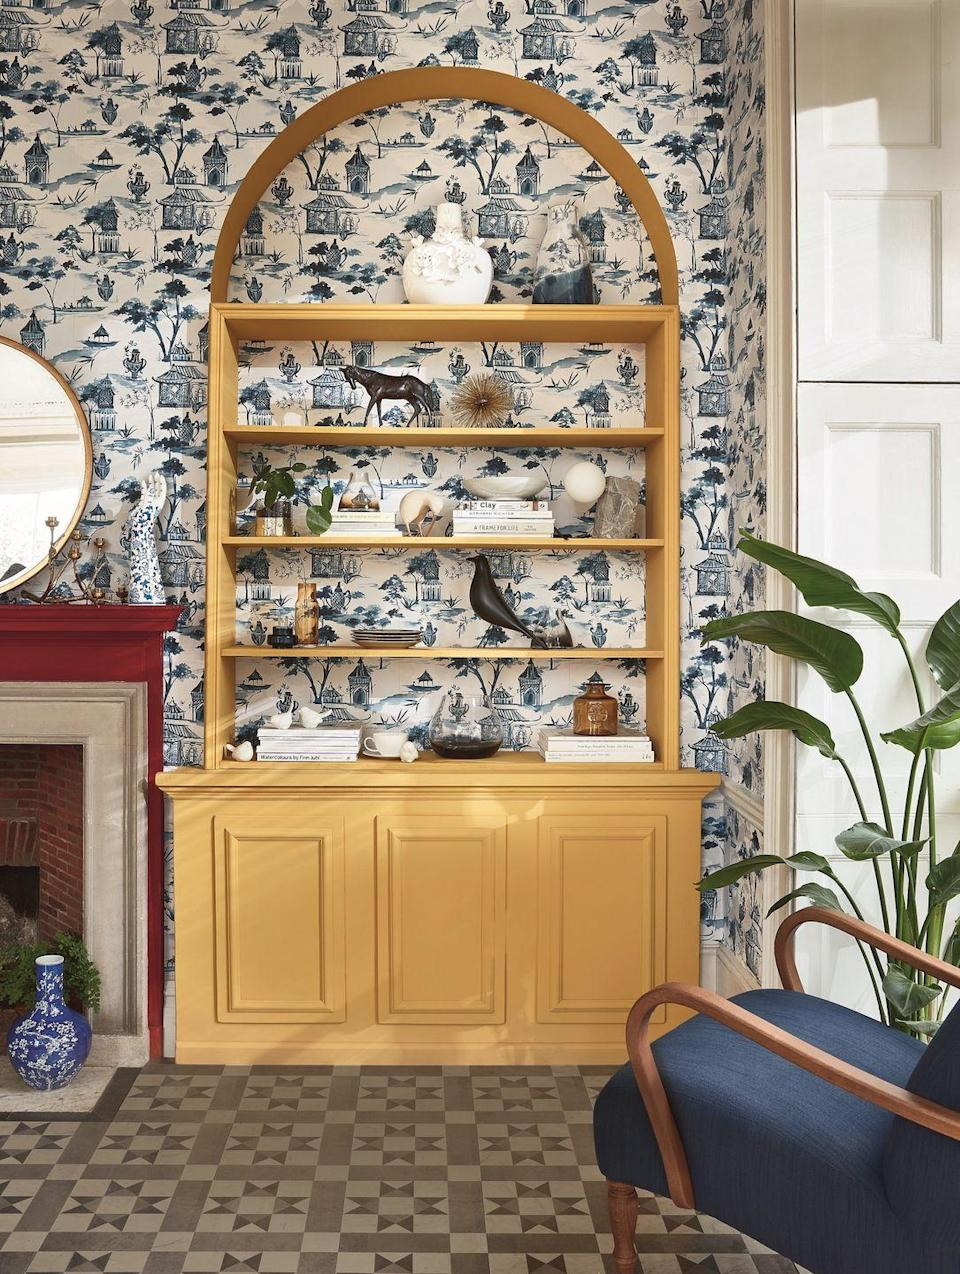 """<p>Make a feature of bespoke furniture in your living room by using patterned wallpaper to accentuate its design and features. This charming wallpaper print wonderfully adds so much extra detail, giving the bookcase within the arched alcove an extra dimension beyond its artfully styled shelves.</p><p>Pictured: Shop the Heritage Revival trend at <a href=""""https://go.redirectingat.com?id=127X1599956&url=https%3A%2F%2Fwww.johnlewis.com%2Fsearch%3Fsearch-term%3Dheritage%2Brevival&sref=https%3A%2F%2Fwww.housebeautiful.com%2Fuk%2Fdecorate%2Fliving-room%2Fg35838996%2Fliving-room-wallpaper-ideas%2F"""" rel=""""nofollow noopener"""" target=""""_blank"""" data-ylk=""""slk:John Lewis & Partners"""" class=""""link rapid-noclick-resp"""">John Lewis & Partners</a></p>"""